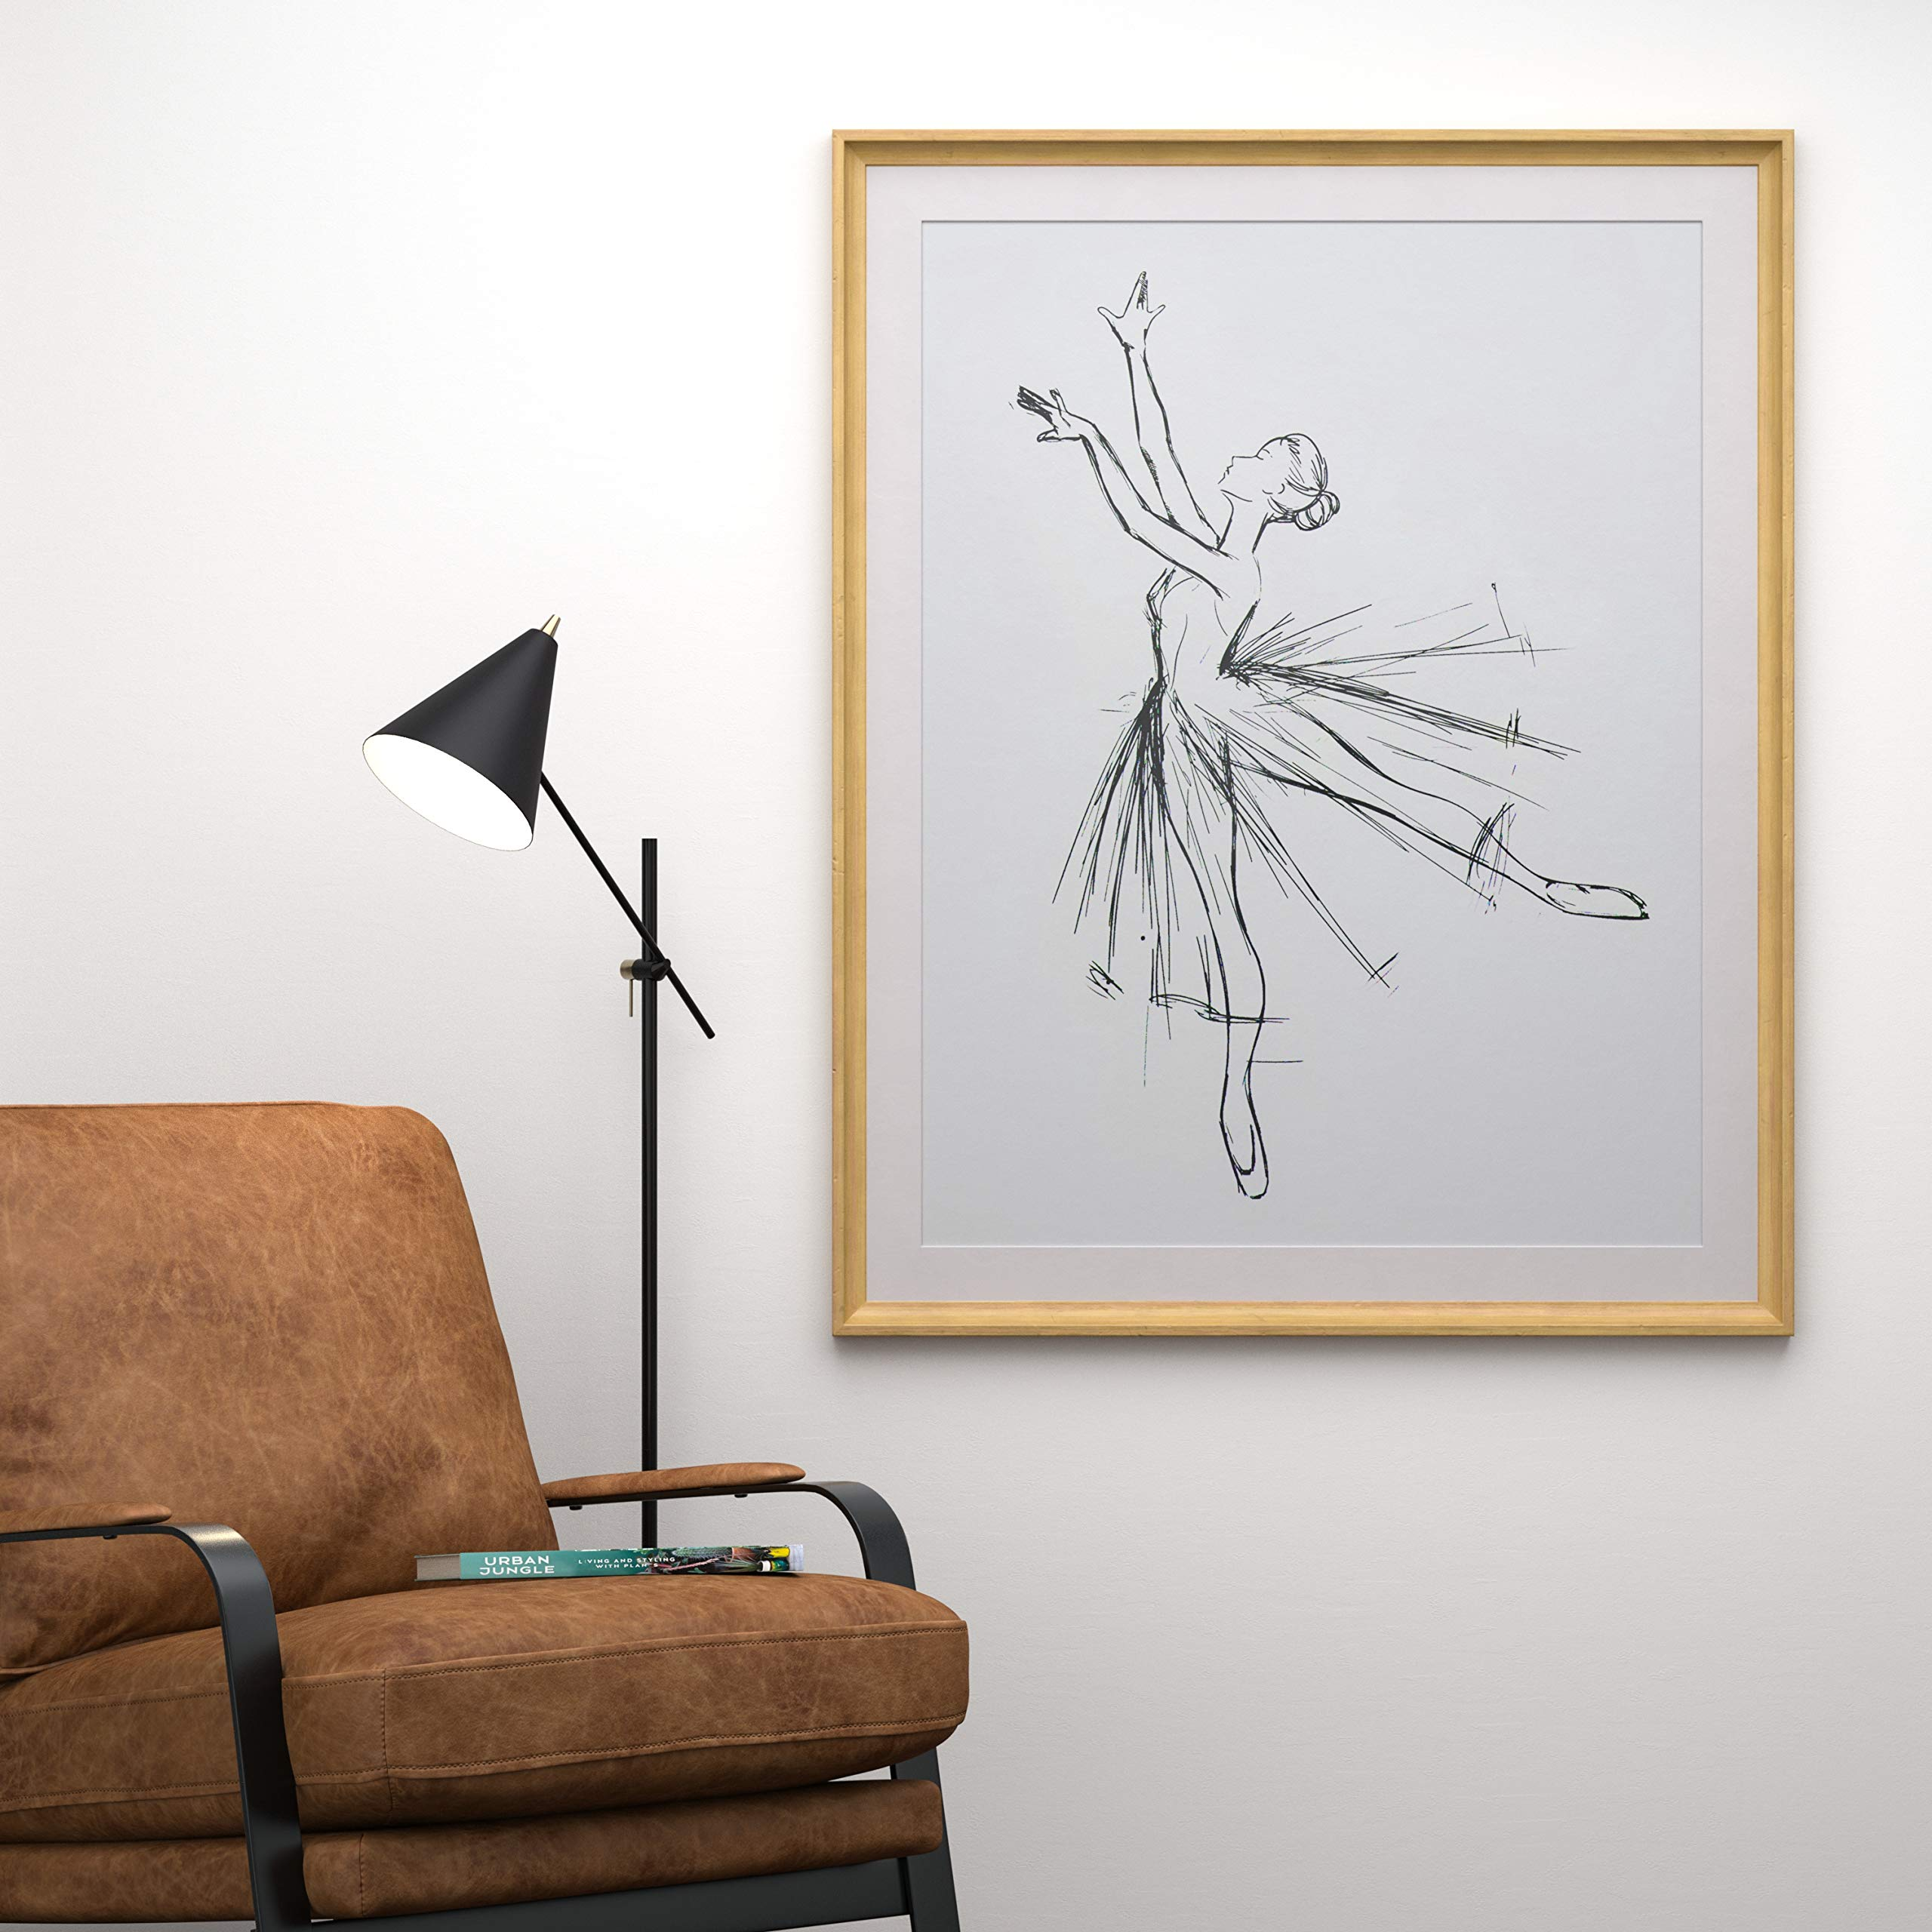 Rivet Modern Sketch of Dancer with Clean White Background, 39.42''H x 31.42''W x 2.27''D including Simple Maple Frame by Rivet (Image #2)